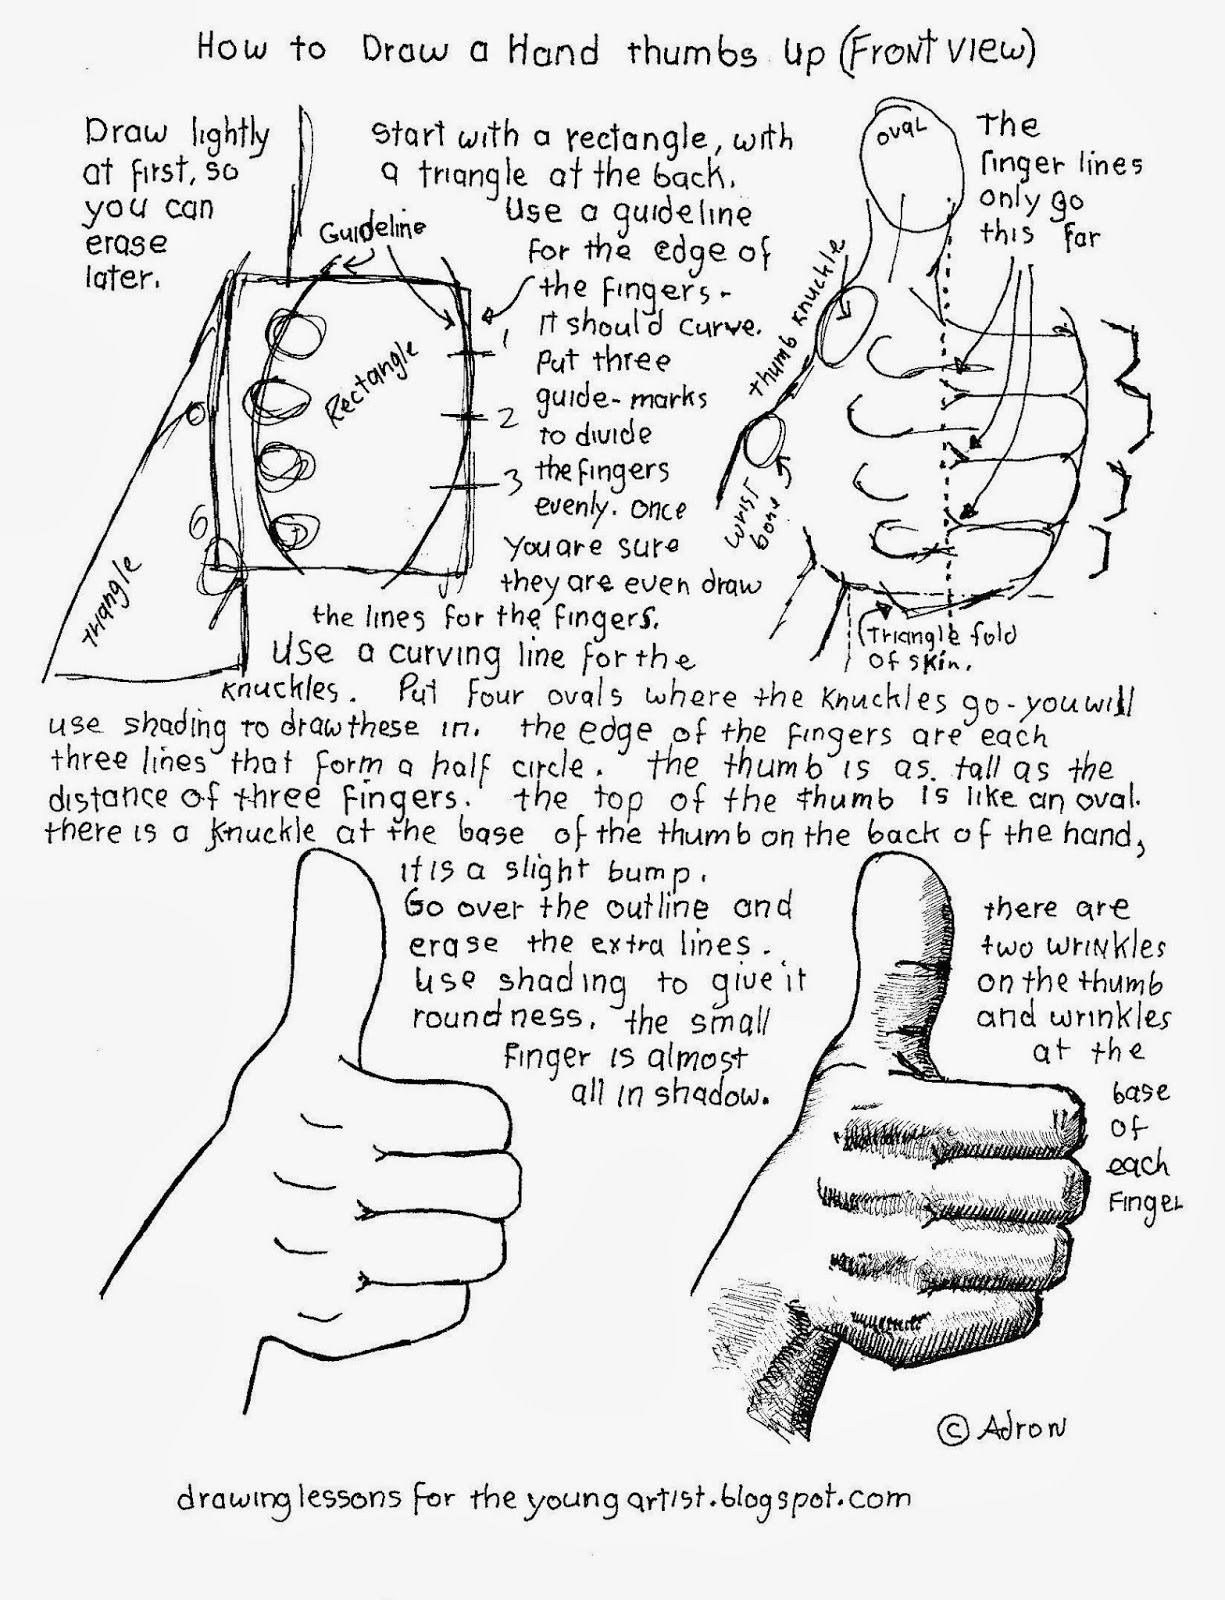 Free How To Draw A Hand Thumbs Up Front View Worksheet